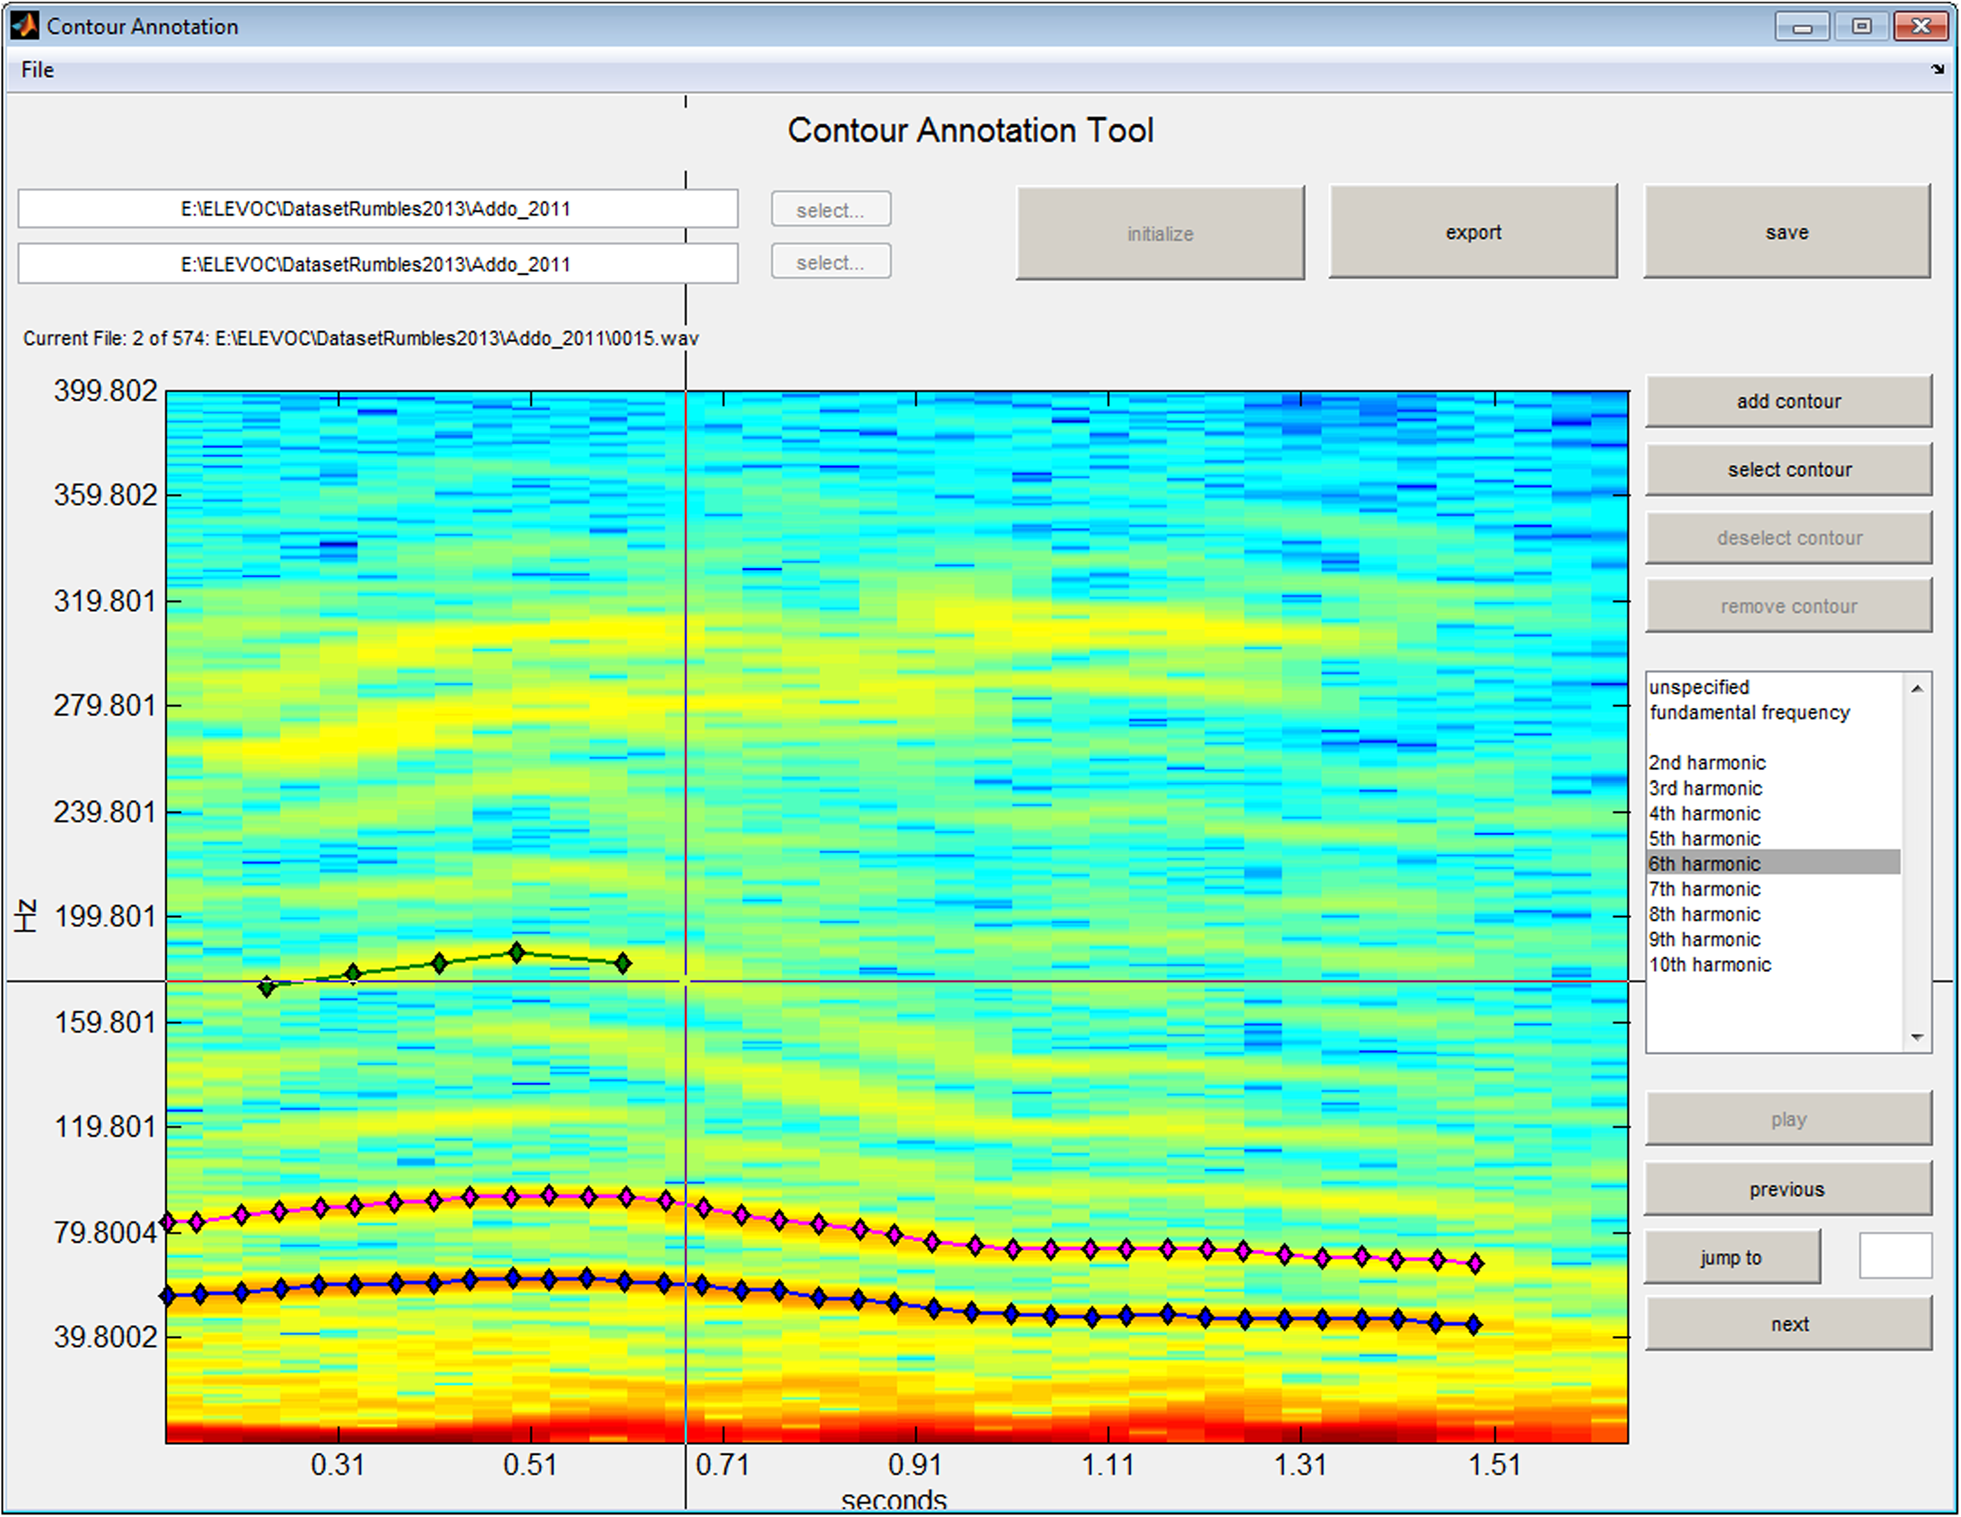 Zeppelzauer and Stoeger BMC Res Notes (2015) 8:409 Page 7 of 15 Fig. 3 The developed semi-automatic sound annotation tool. The user can annotate and label frequency tracks.